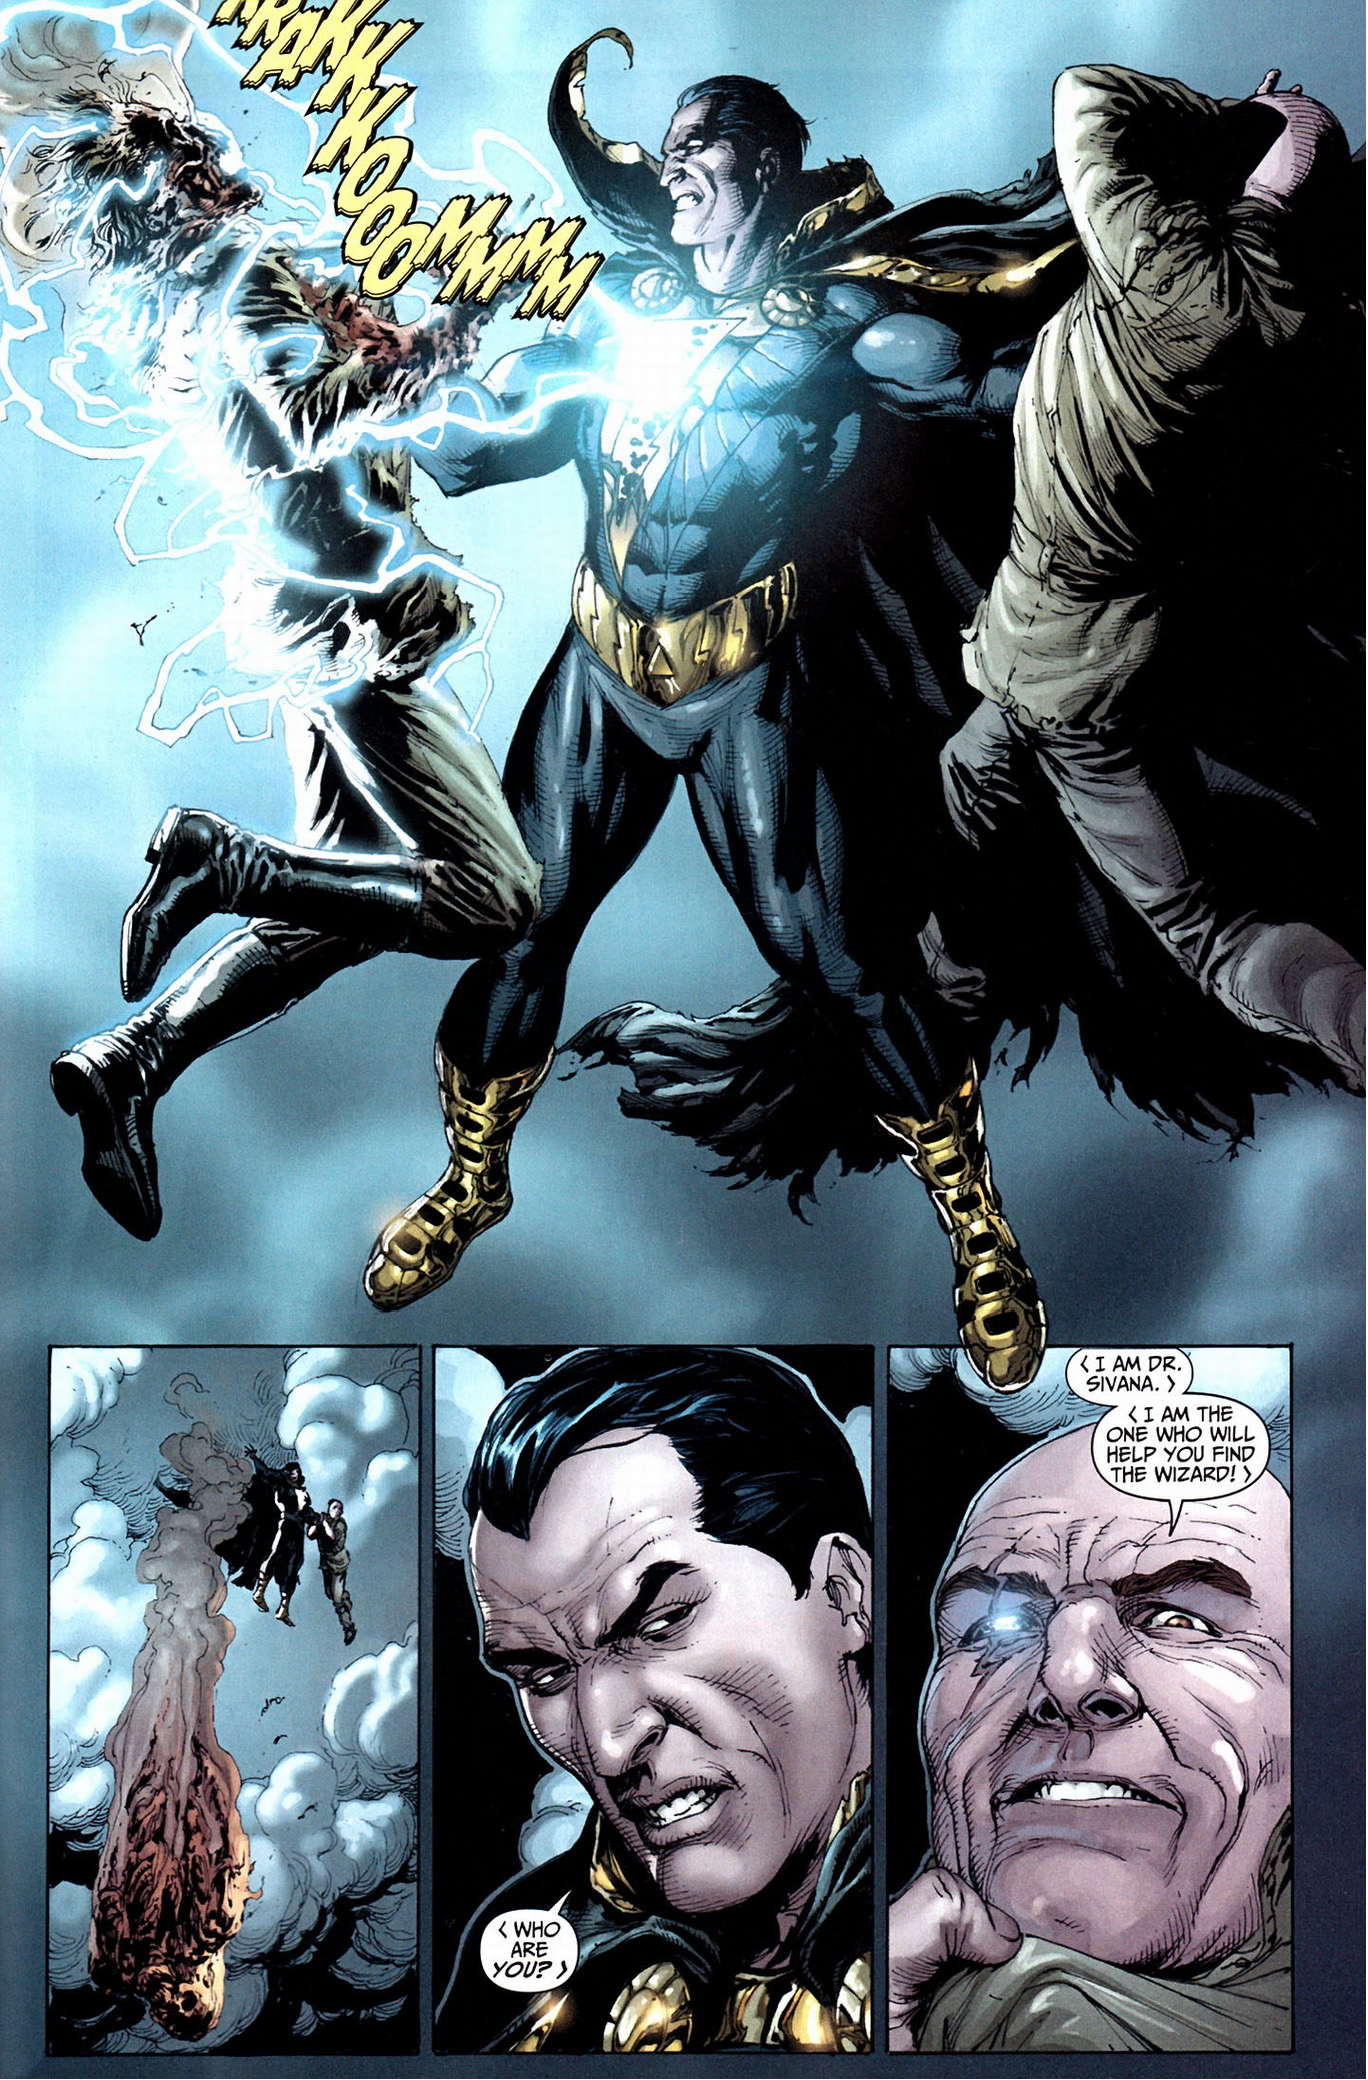 doctor sivana's first meeting with black adam